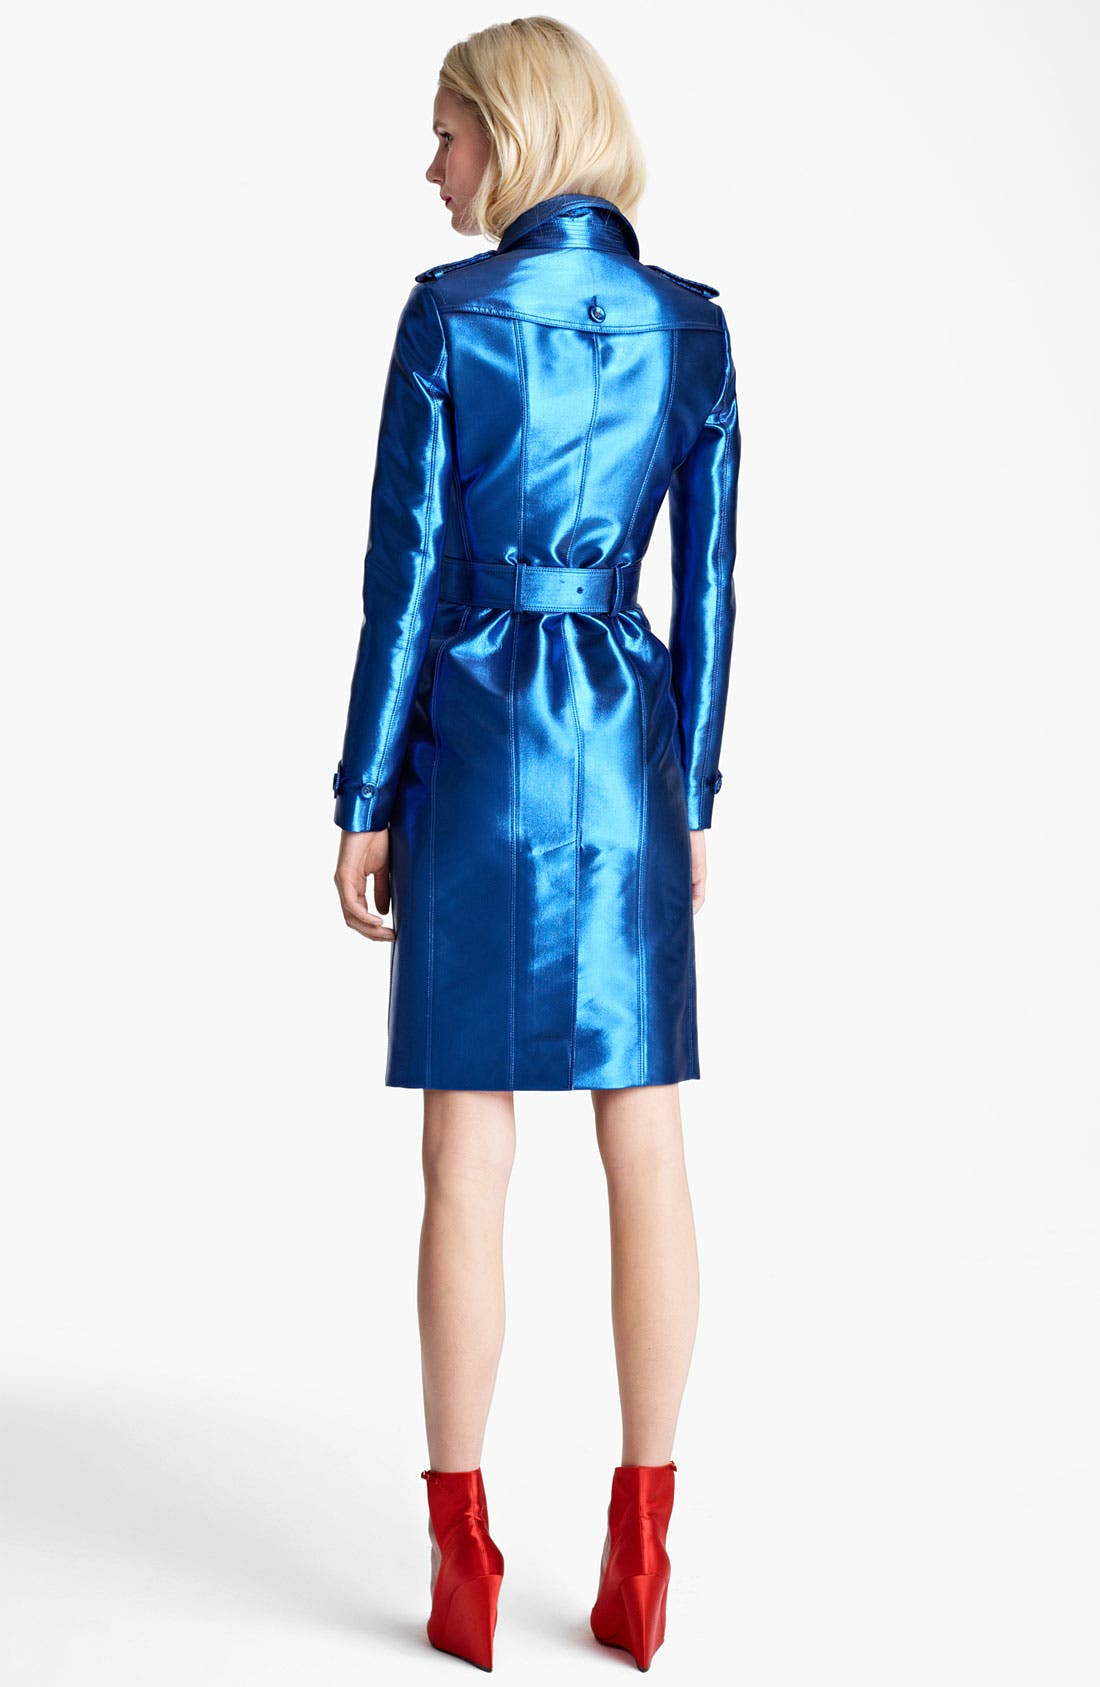 BURBERRY PRORSUM,                             Belted Metallic Trench Coat,                             Alternate thumbnail 2, color,                             430